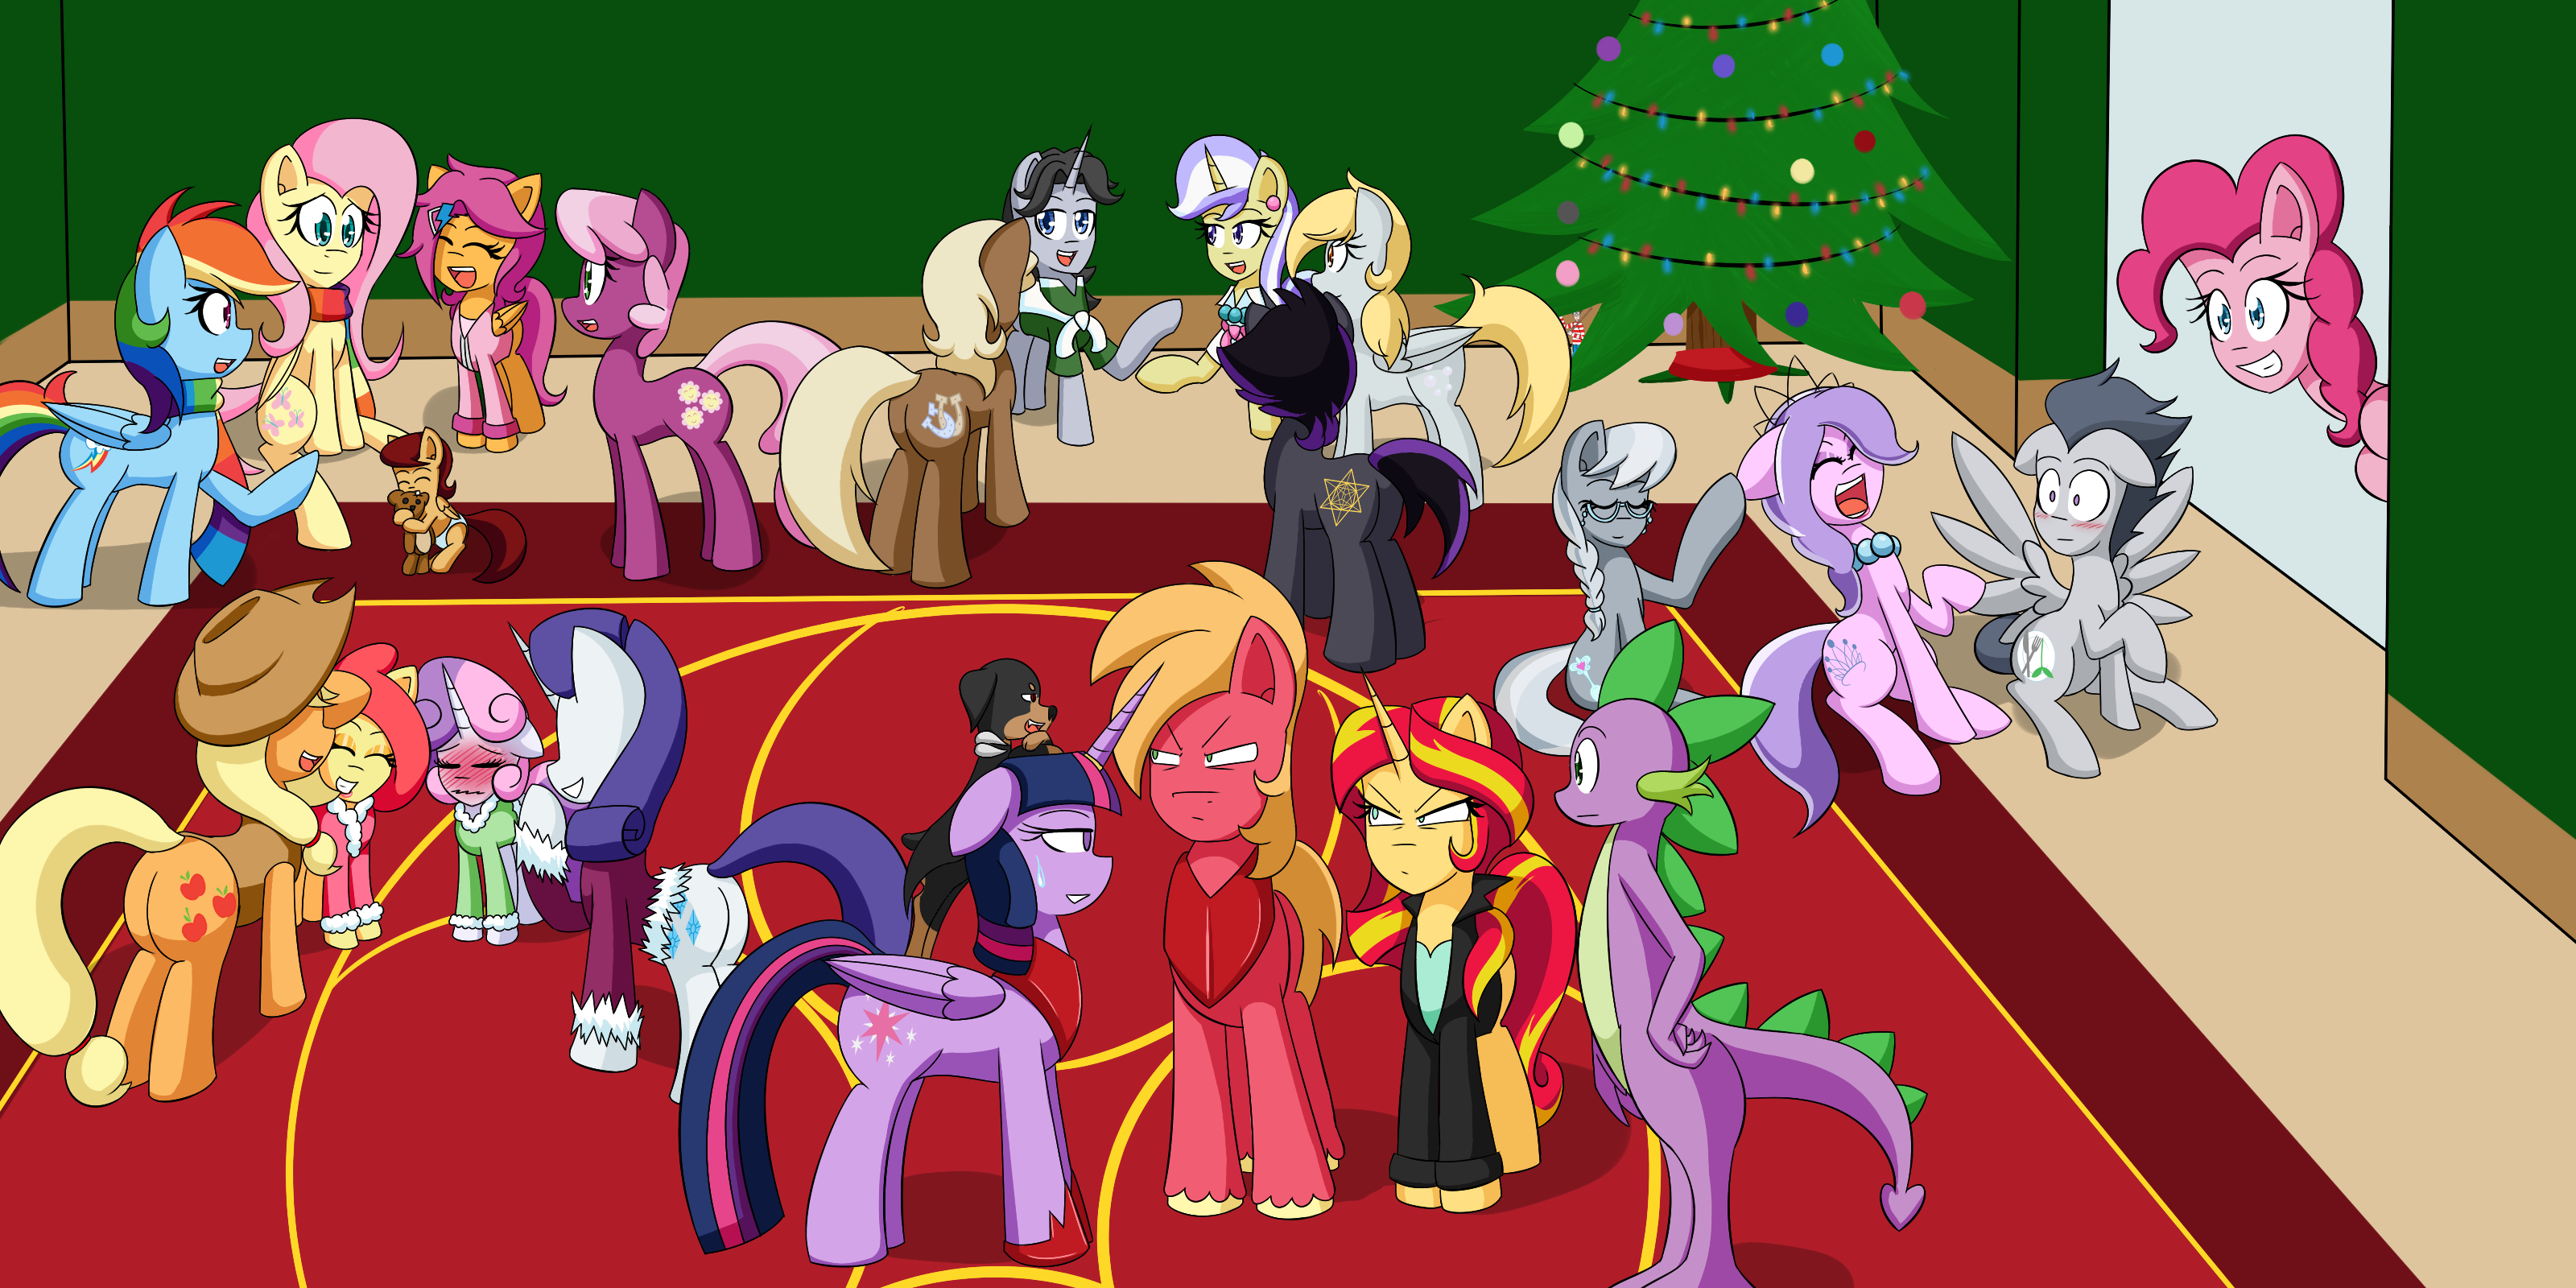 Motherly Scootaloo Celebrating Hearth S Warming By Jake Heritagu On Deviantart Also, the mod has admitted that he does not believe in karma, and that scootaloo was at one point. motherly scootaloo celebrating hearth